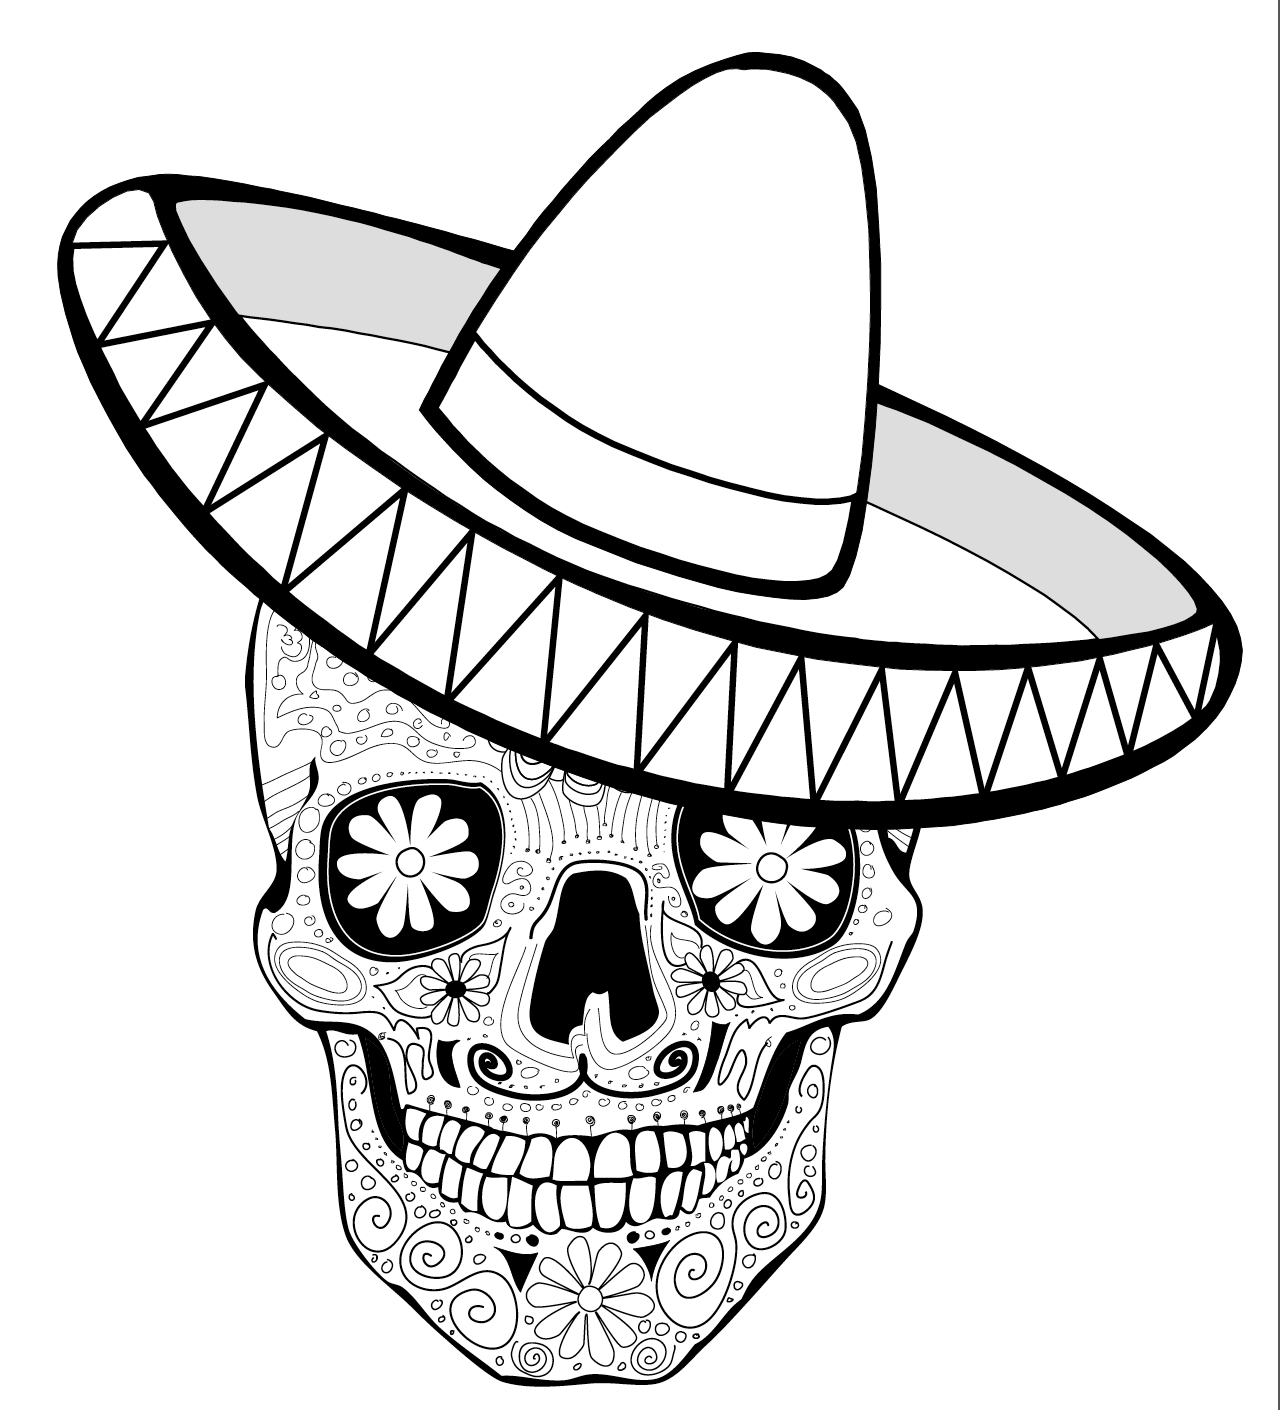 mexico coloring sheet mexican hat coloring page at getcoloringscom free sheet coloring mexico